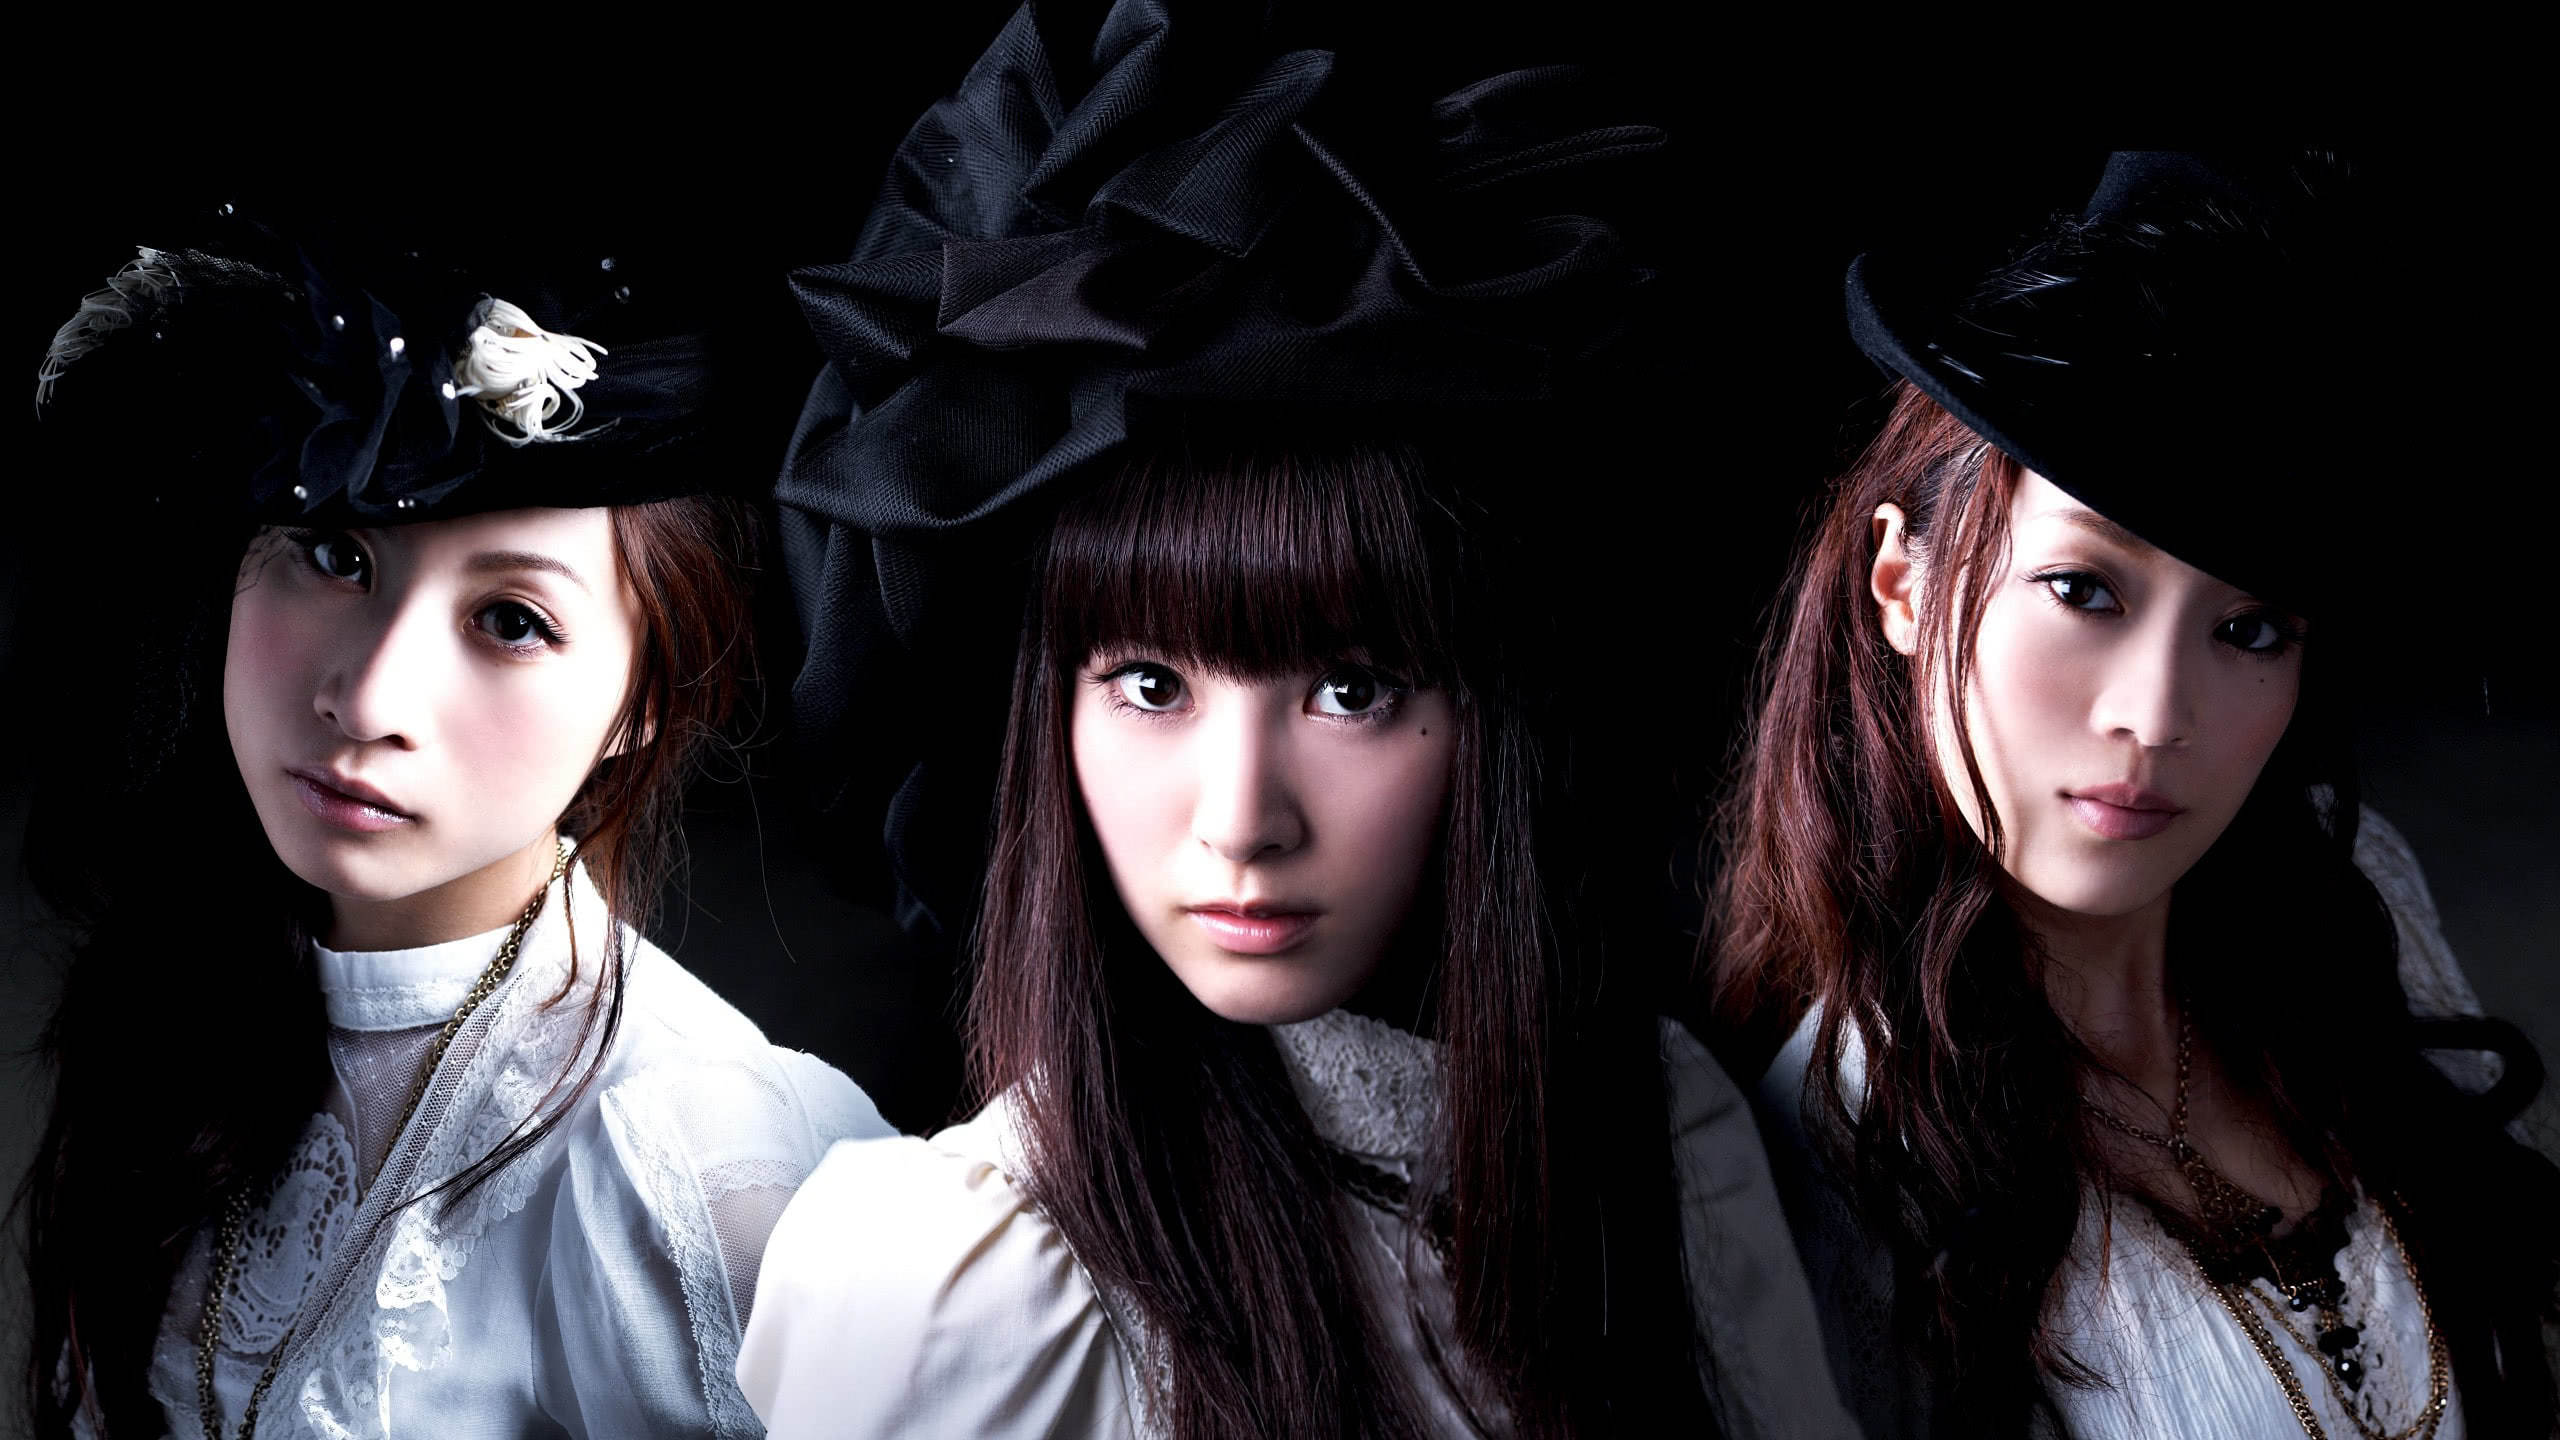 kalafina wqhd 1440p wallpaper